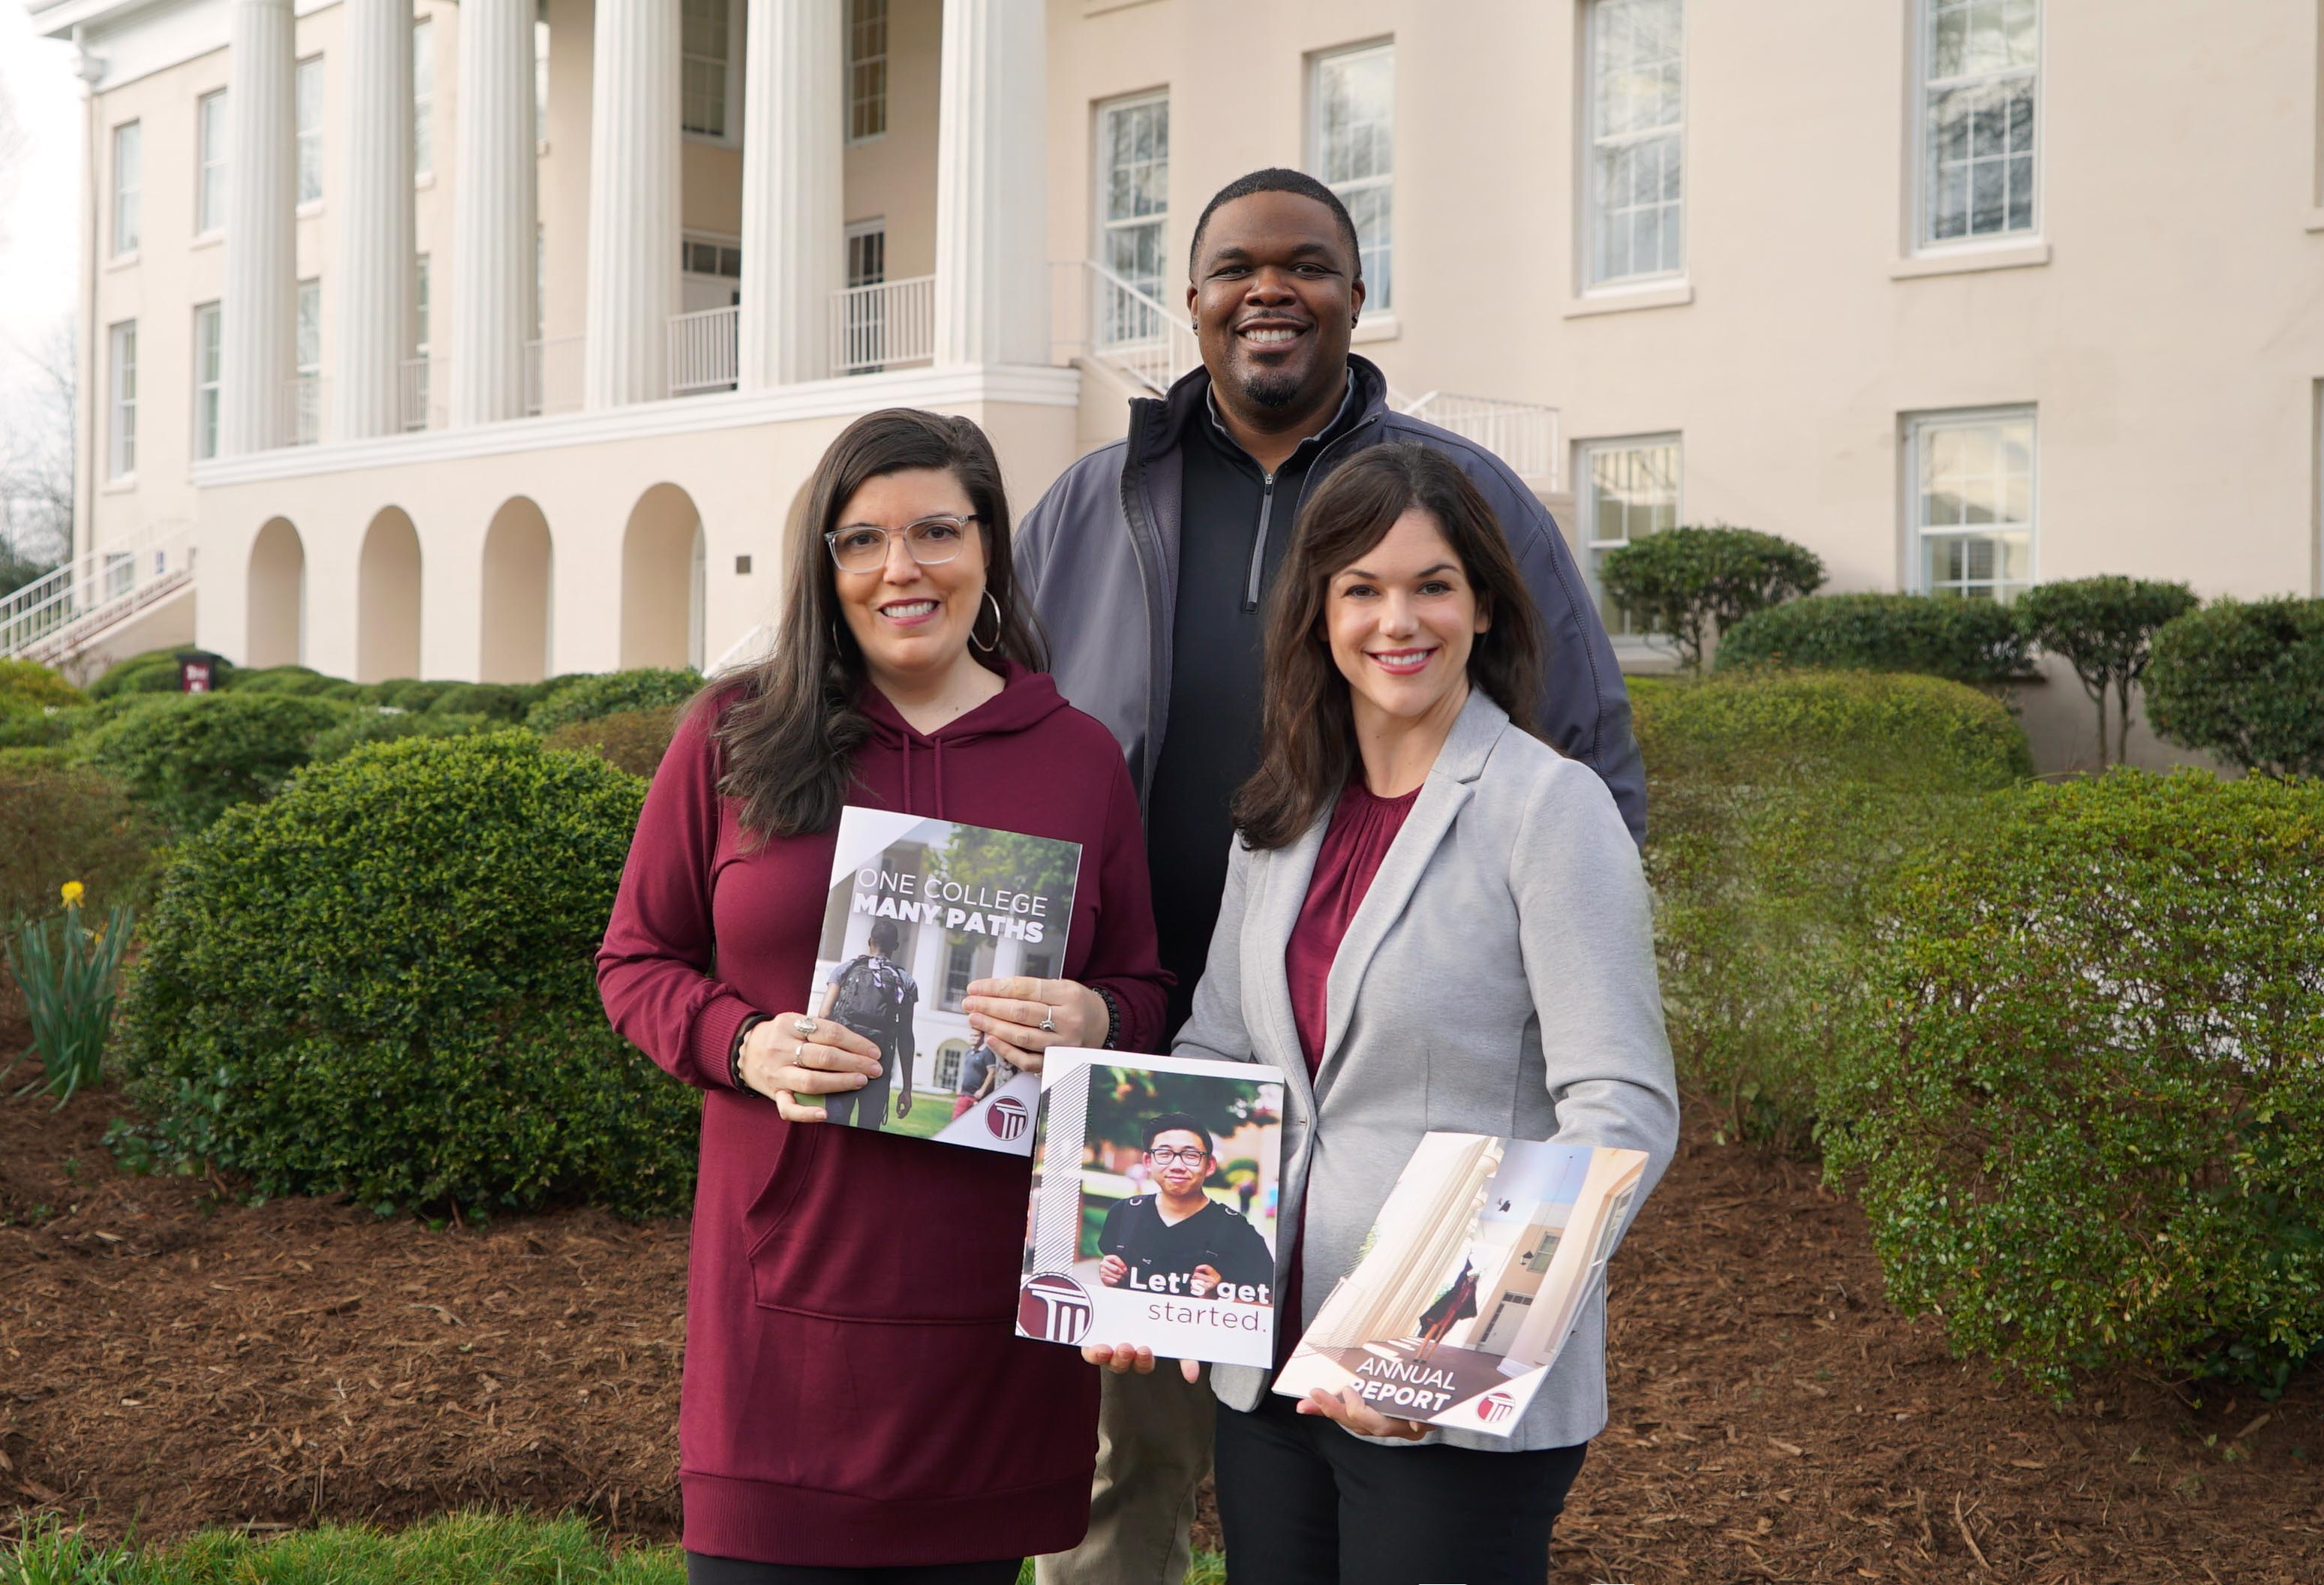 (L-R) Marketing and Communications team members Judy Phillips, Aaron Thompkins and Megan Suber.